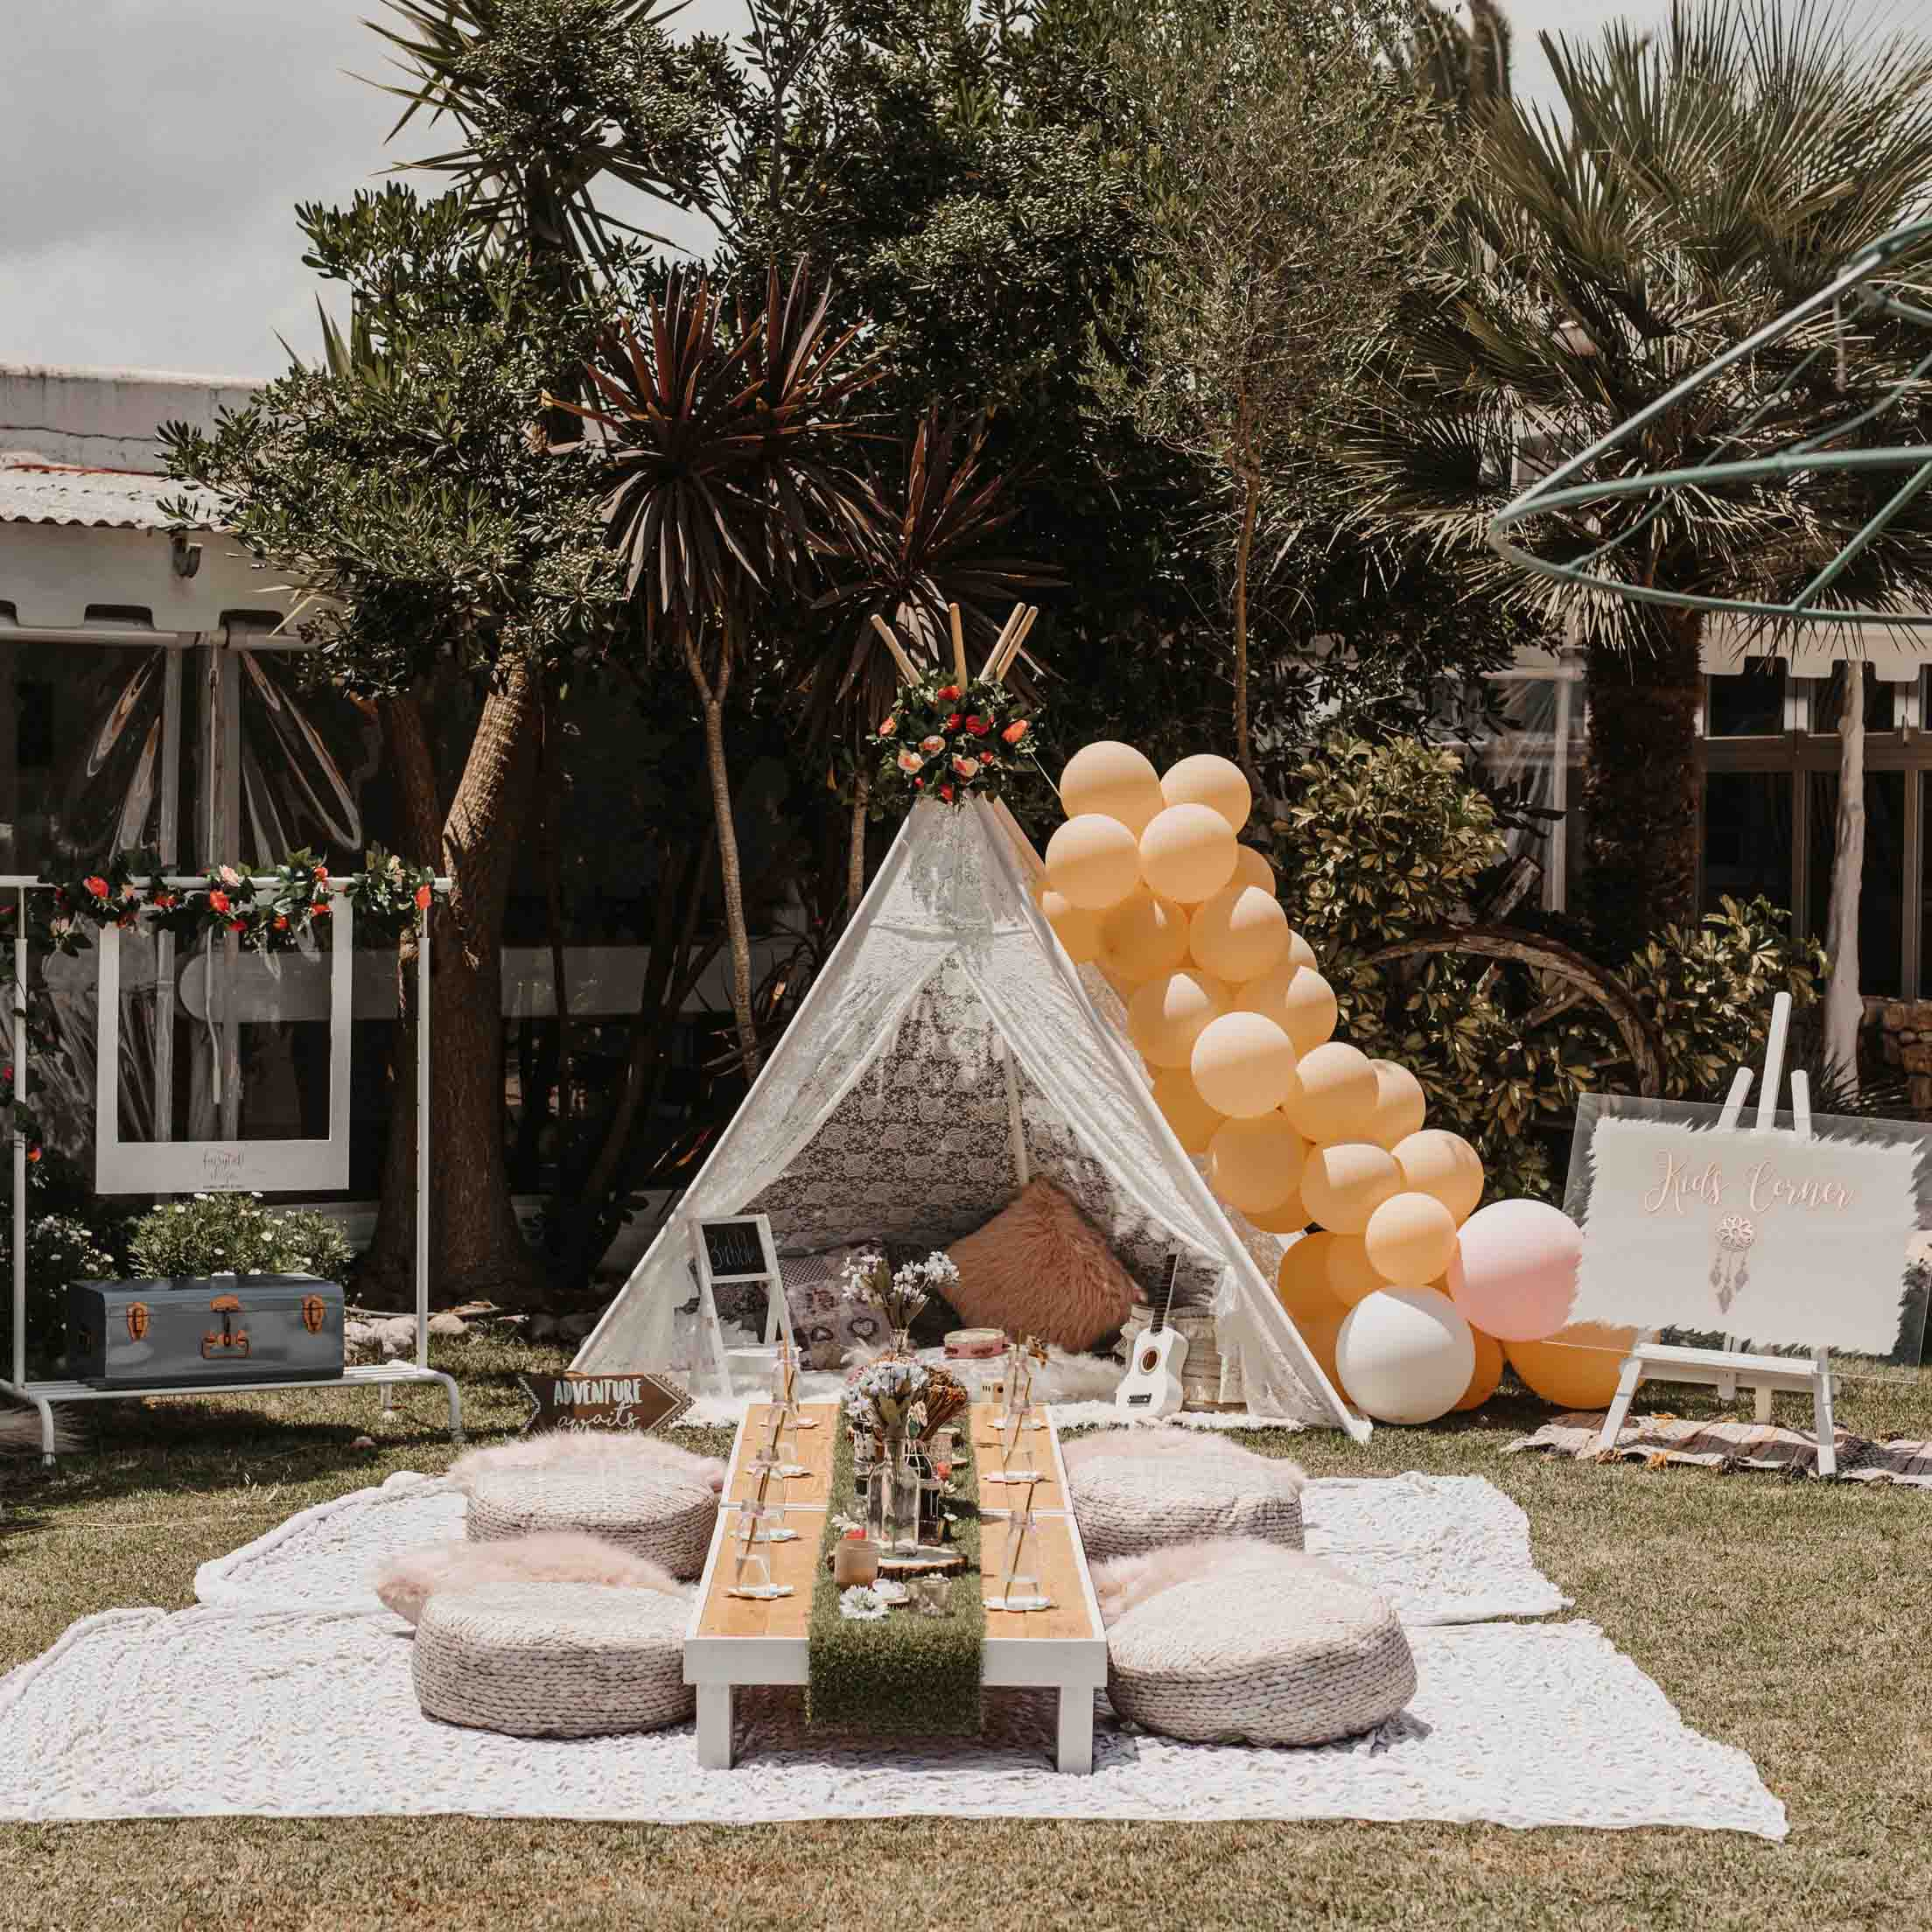 Wedding Kids Corner in Ibiza / Fairytale Ibiza